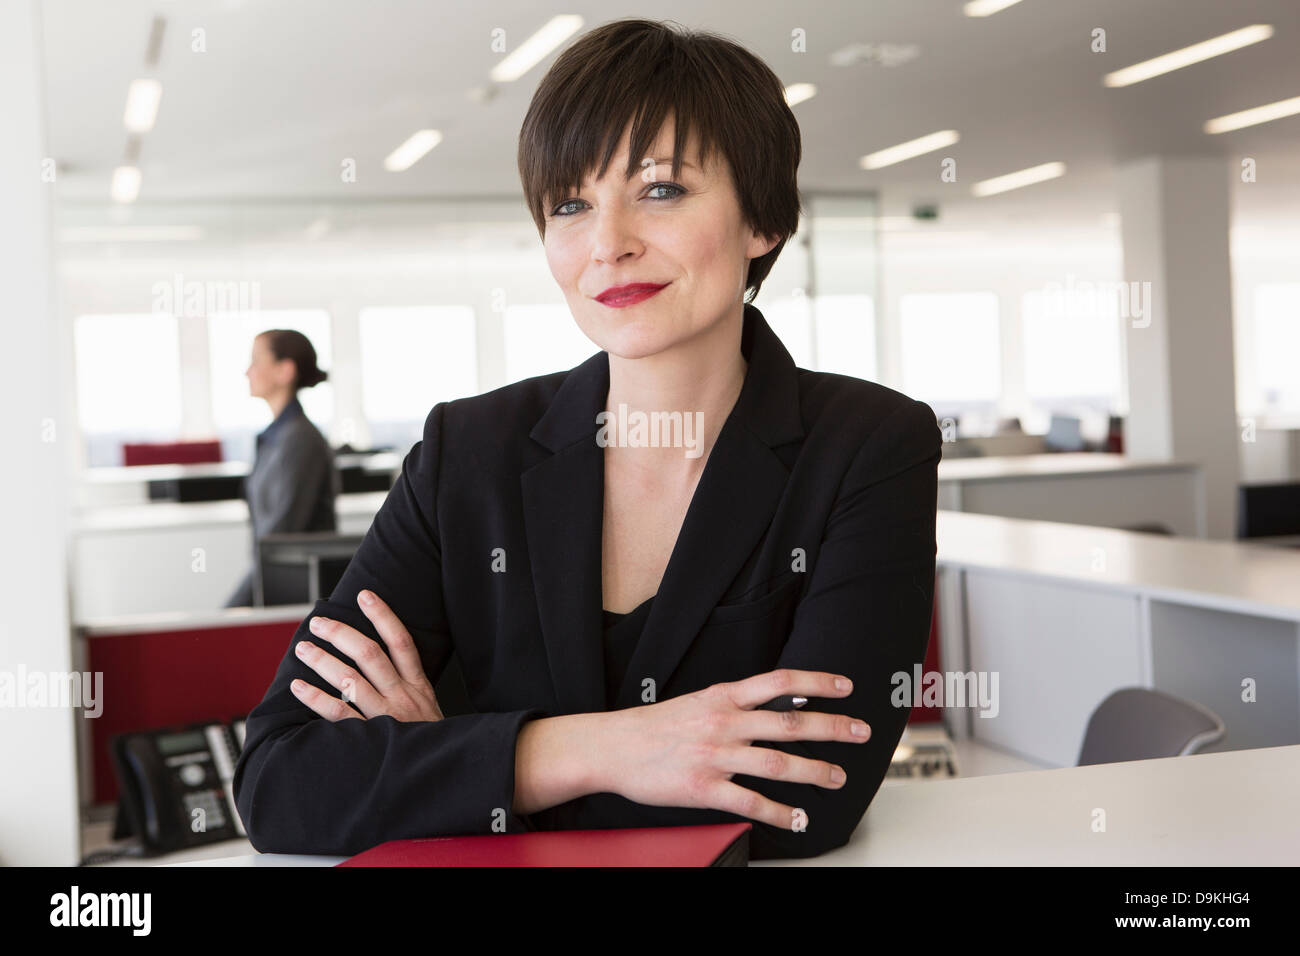 Businesswoman with arms folded - Stock Image